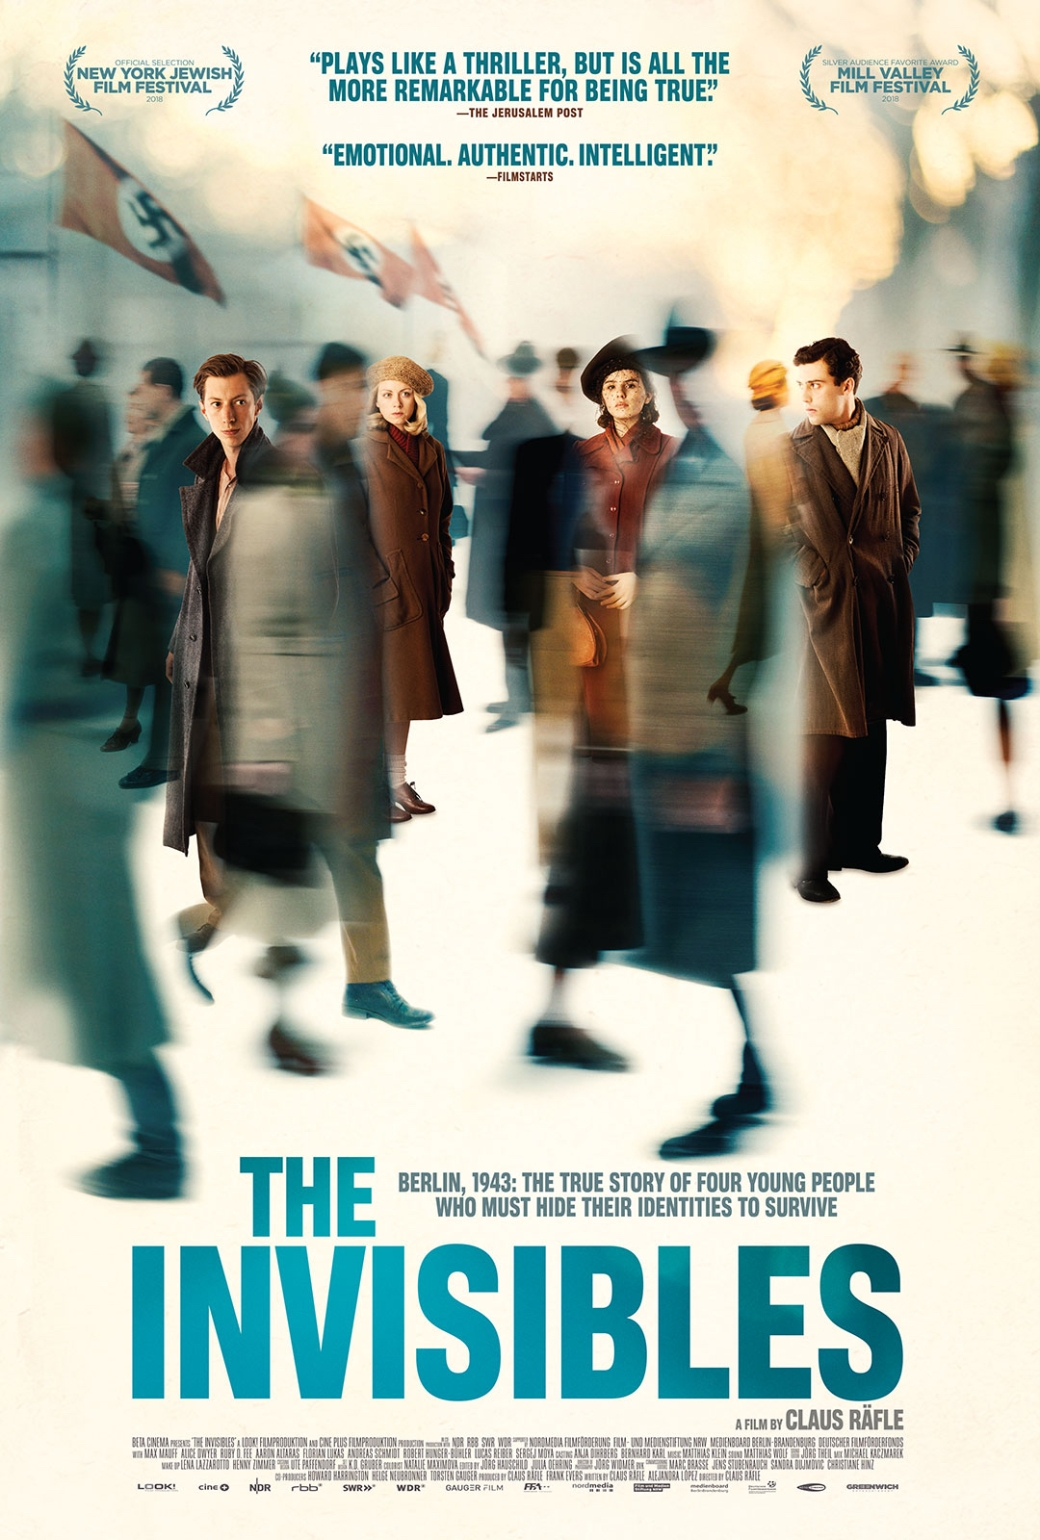 Poster - THE INVISIBLES - Courtesy of Greenwich Entertainment